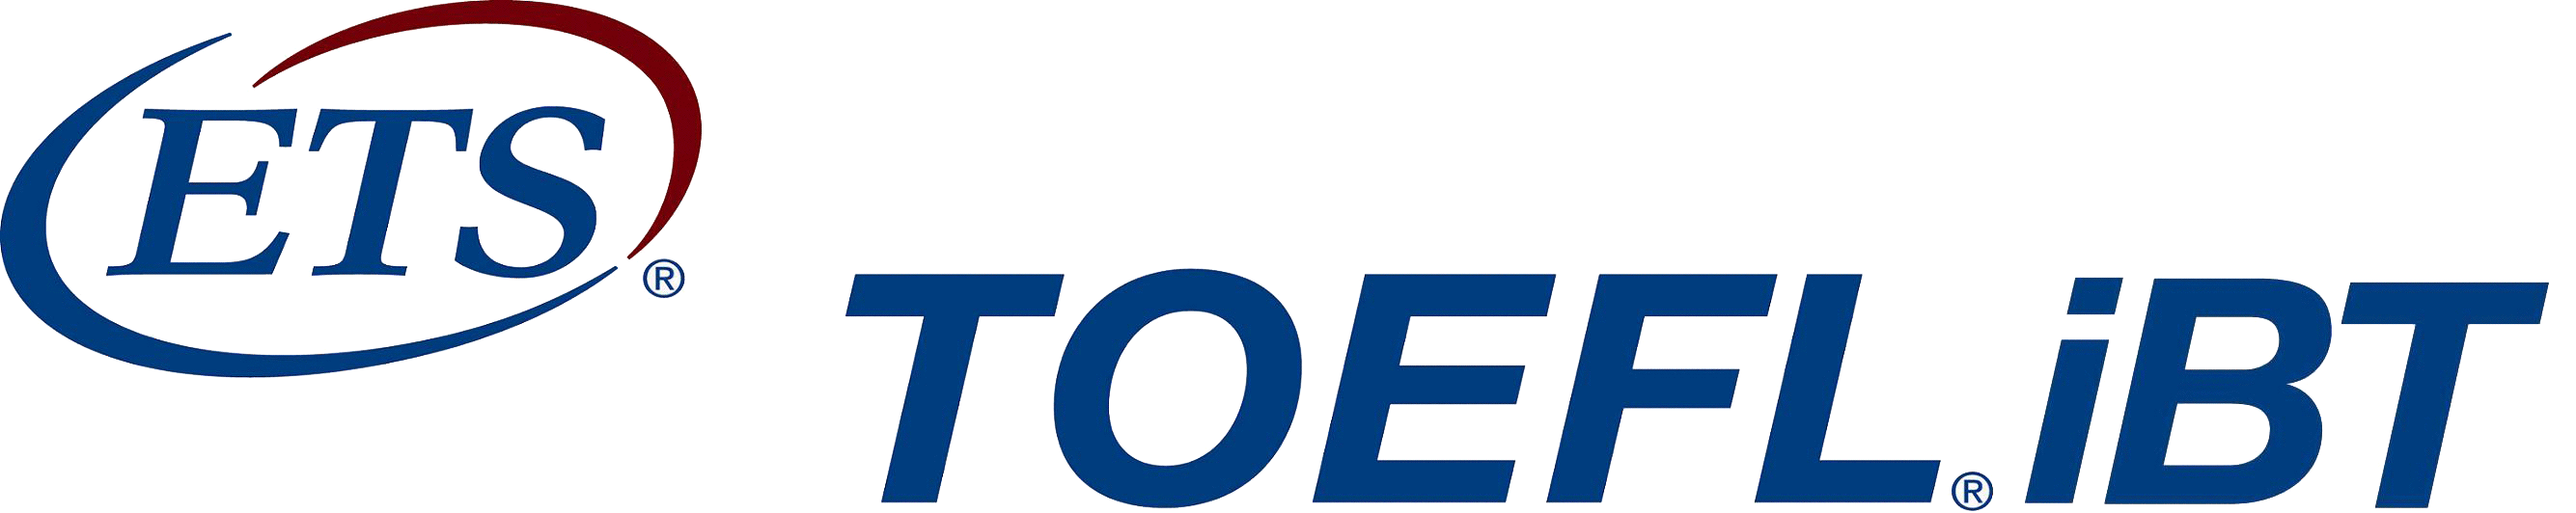 how to study for toefl